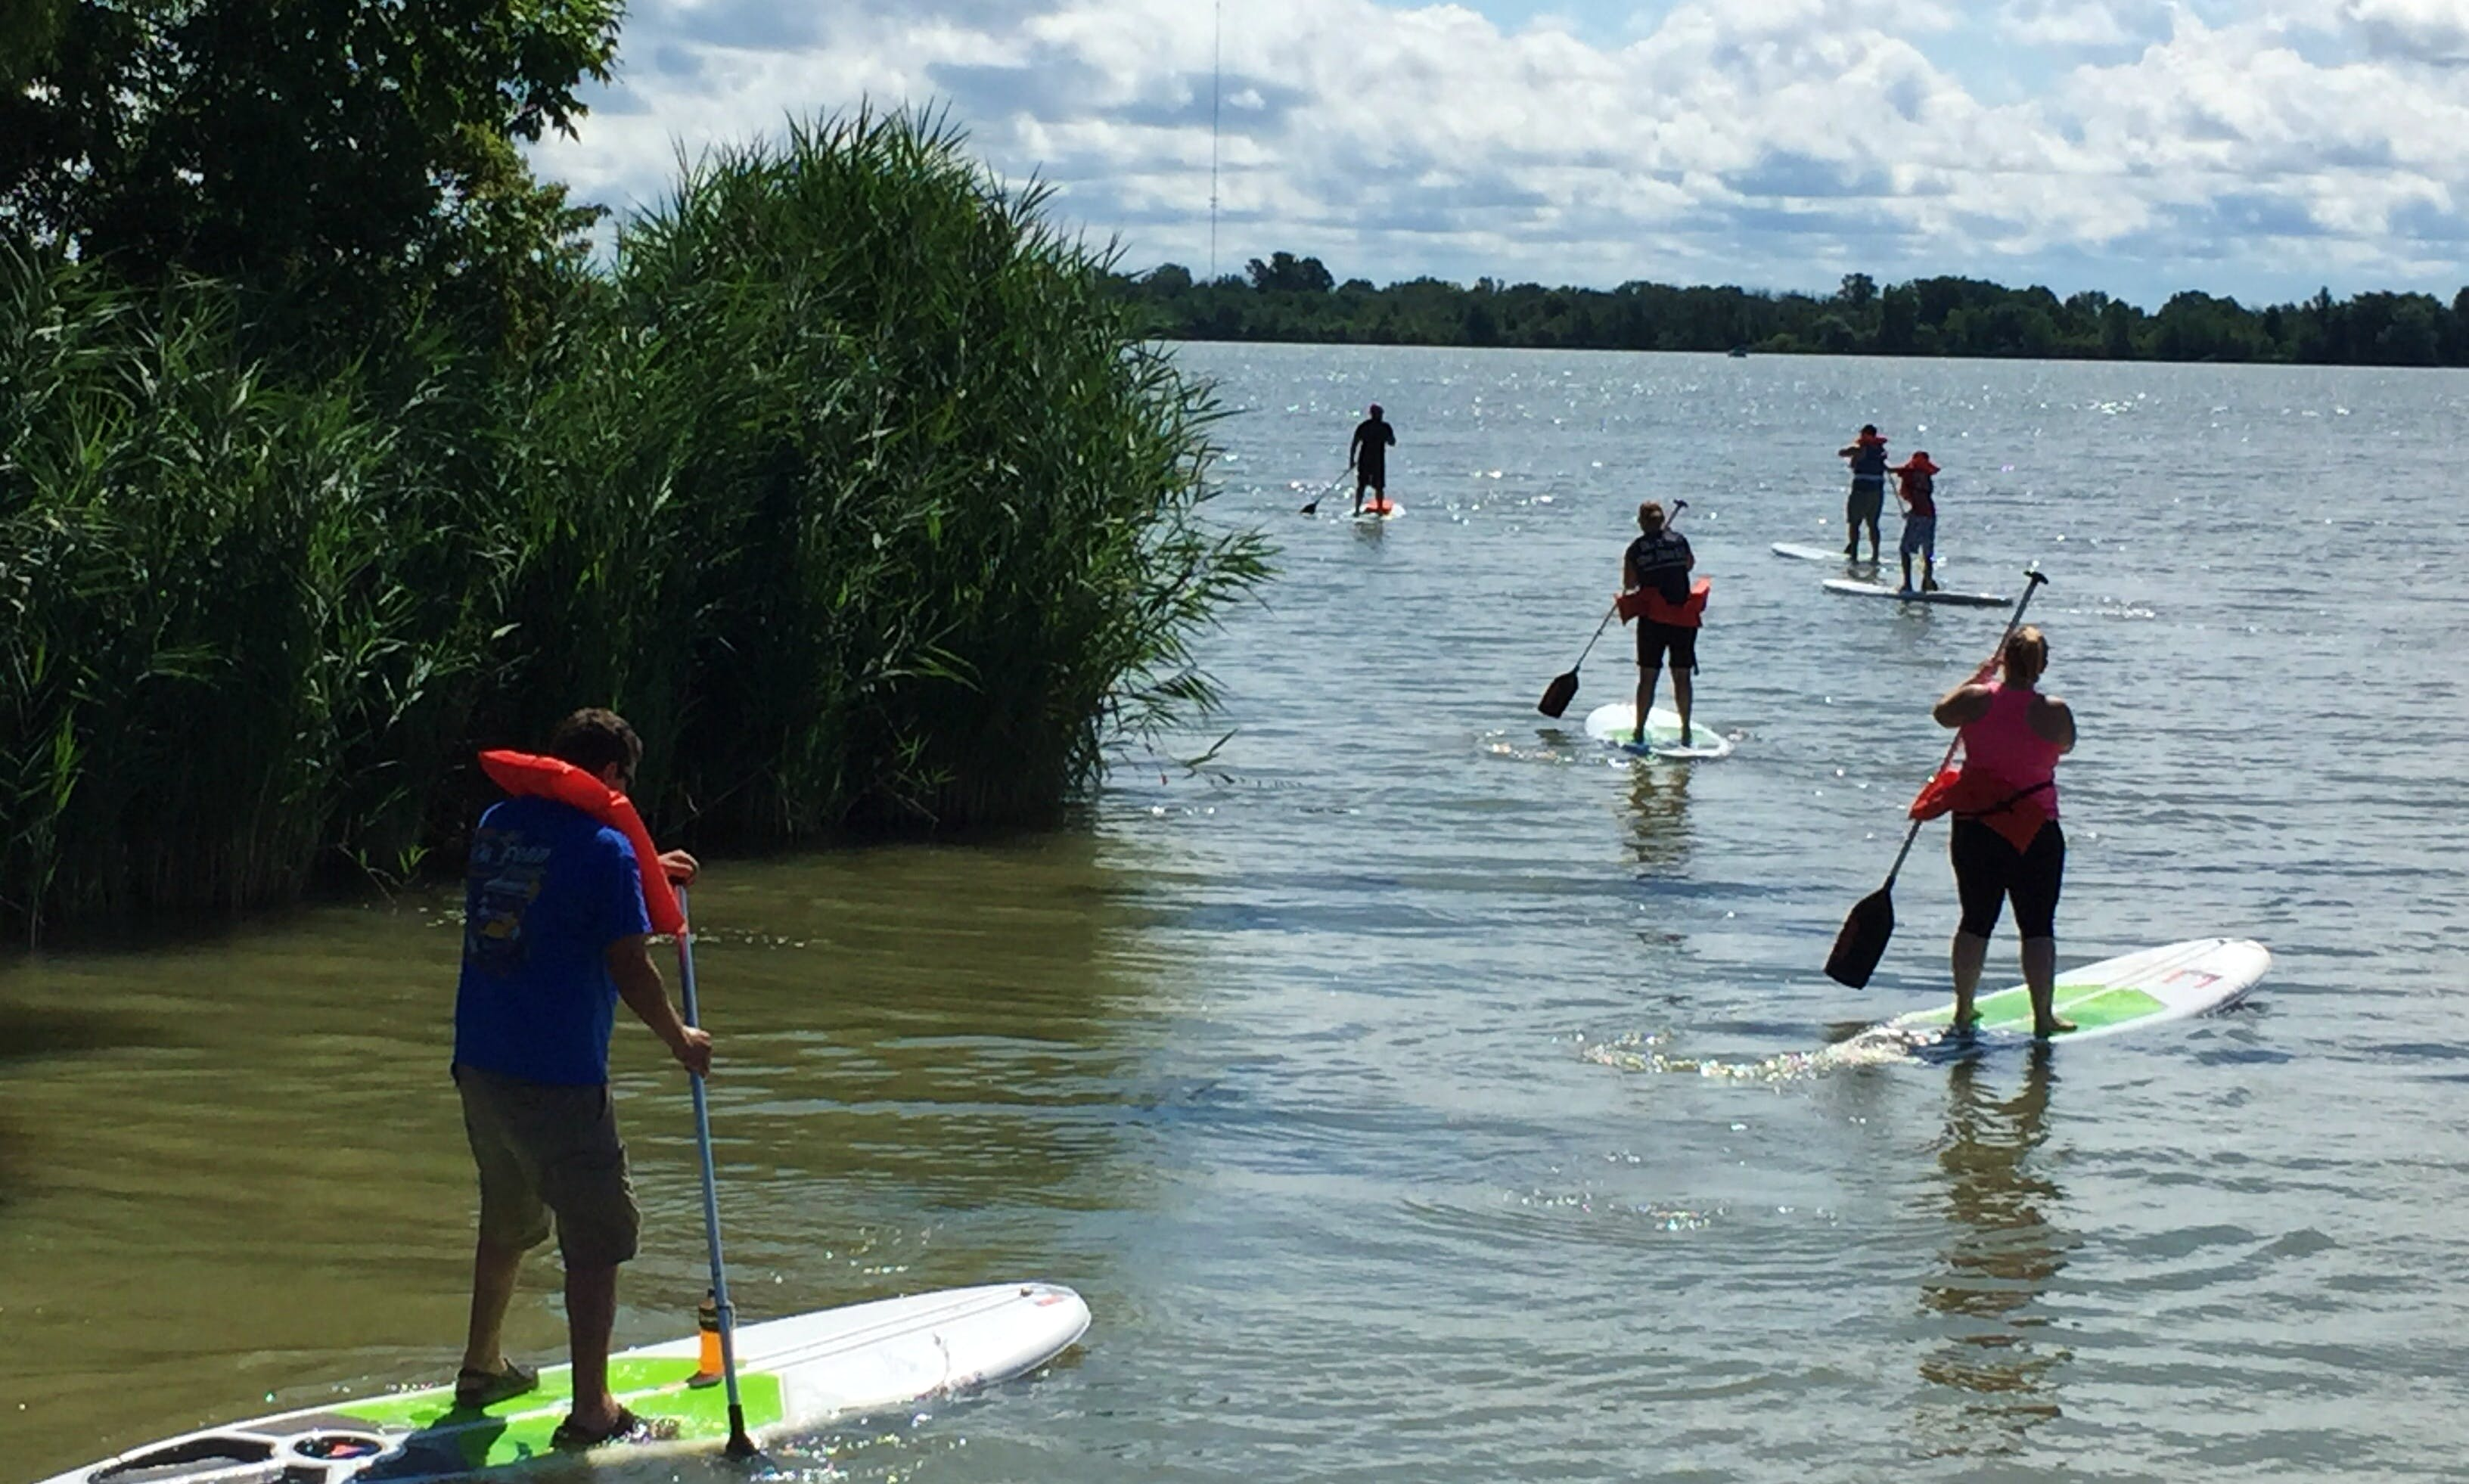 Paddleboard for rent in Port Clinton